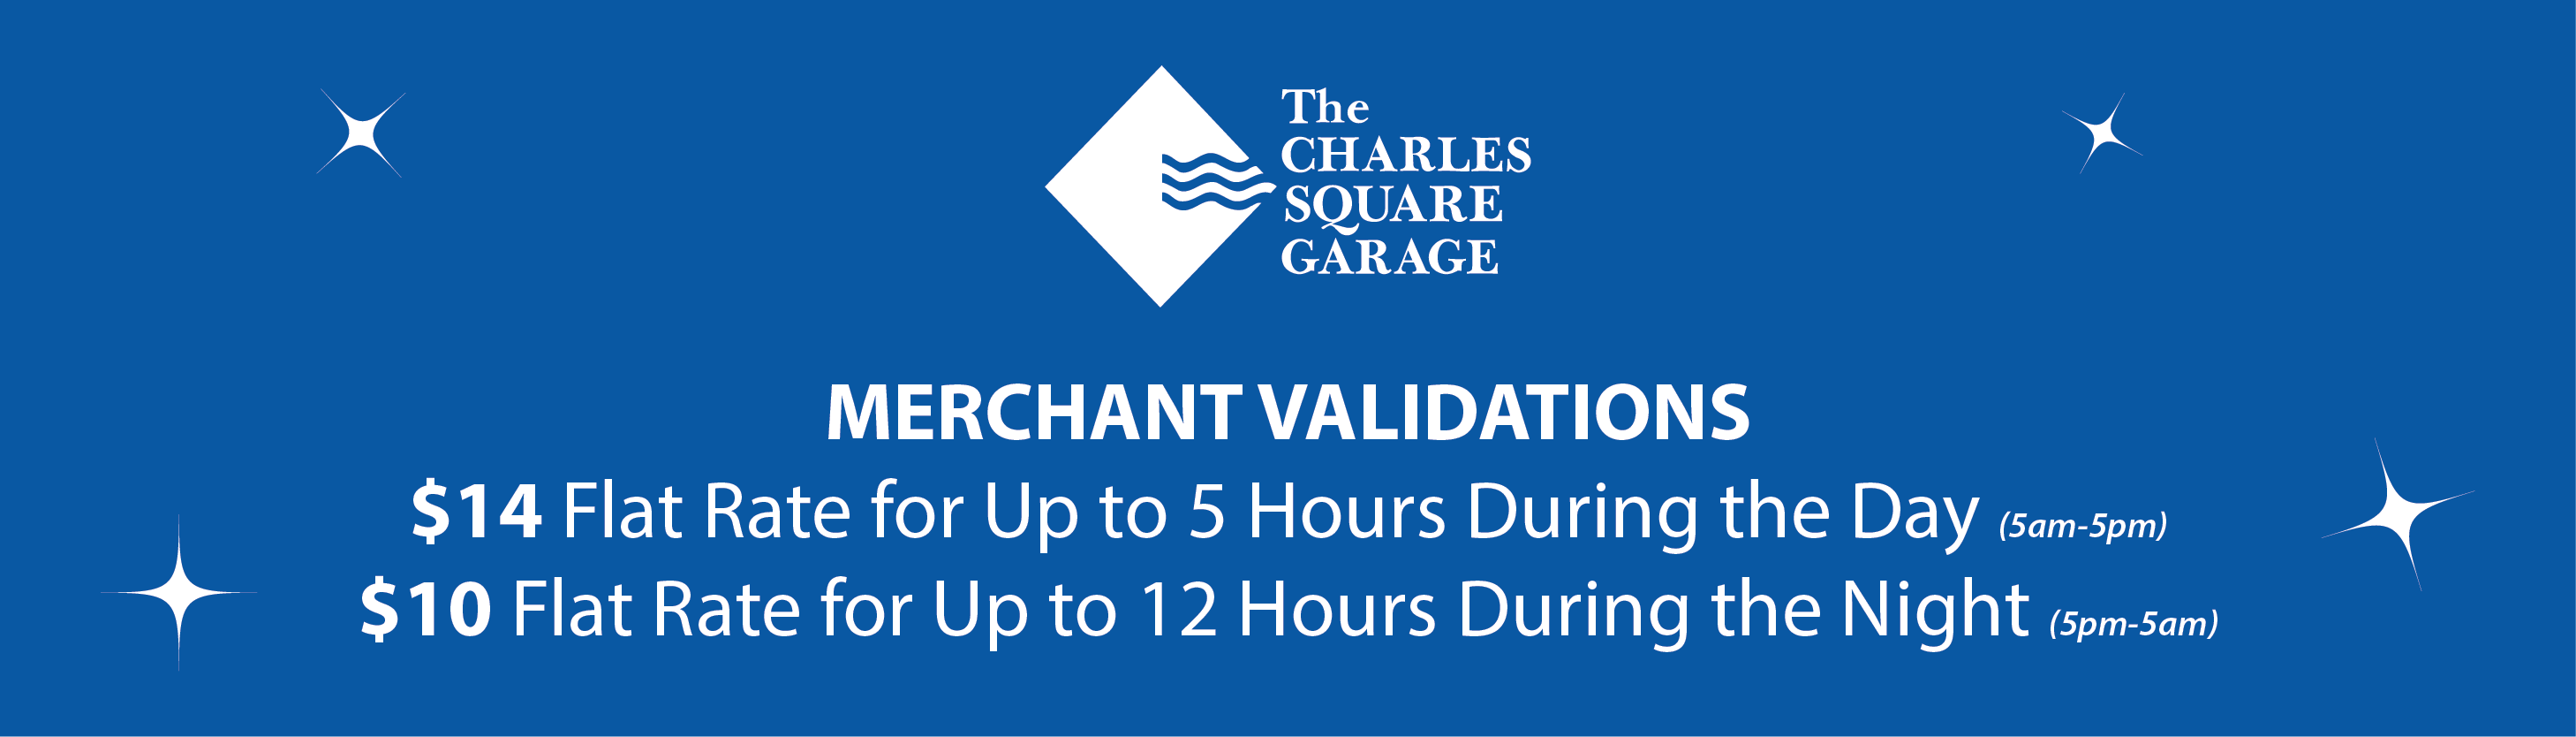 Merchant Validations $14 Flat Rate for Up to 5 hours During the Day - $10 Flat Rate for Up to 12 Hours During the Night